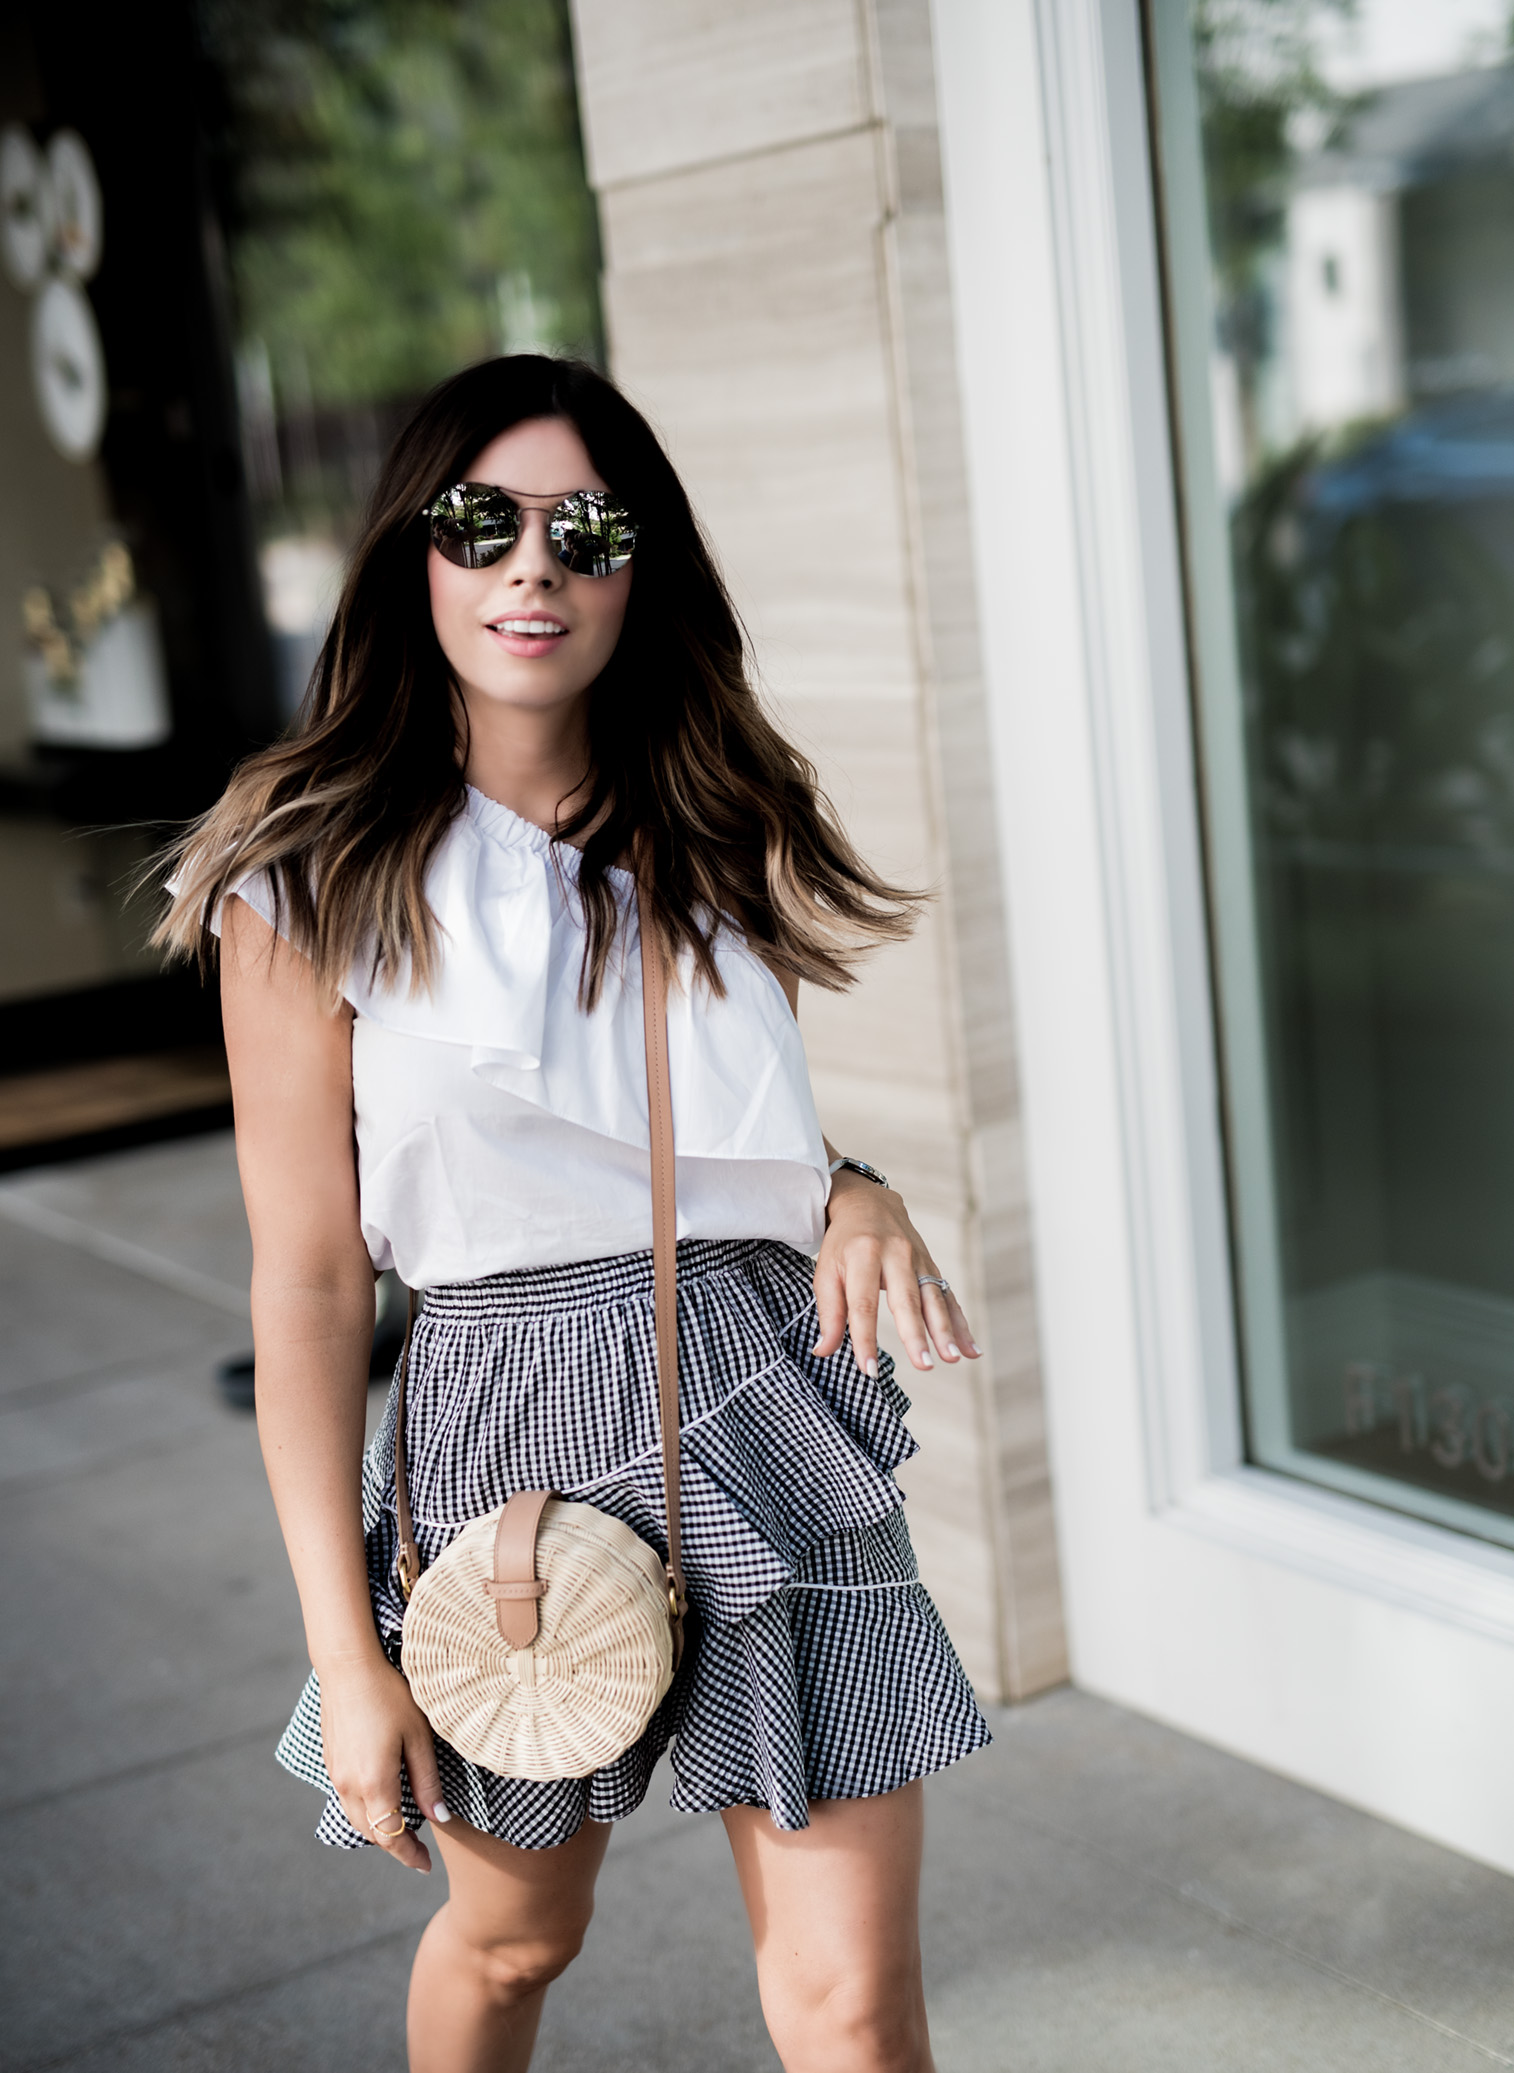 Tiffany Jais Houston fashion and lifestyle blogger   Gingham skirt, off the shoulder top, round rattan bag, street style outfits